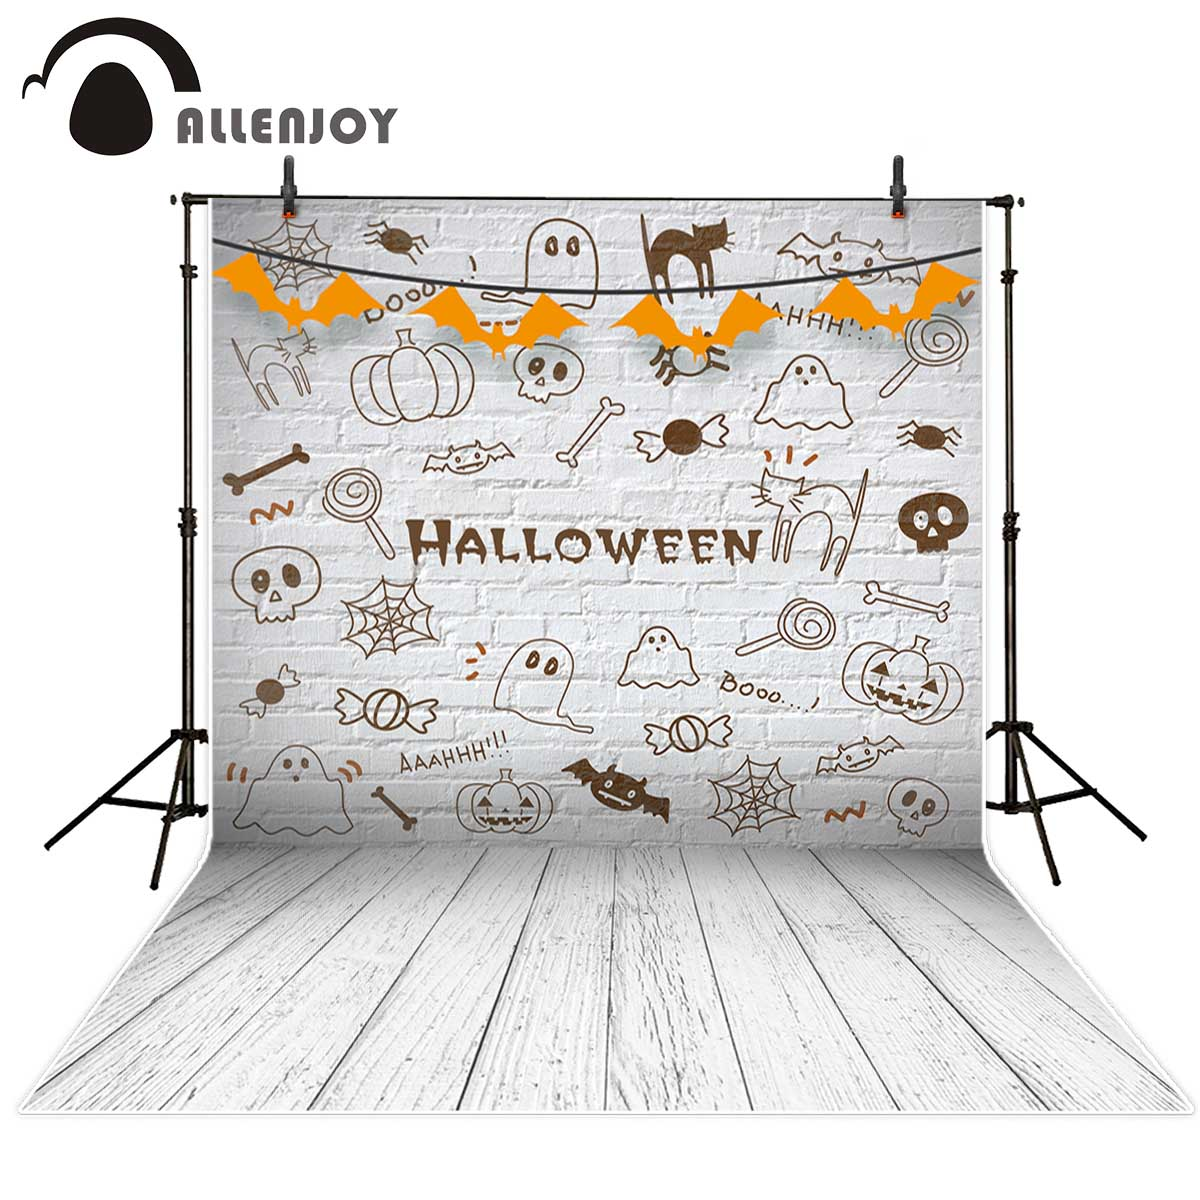 Allenjoy Lovely Halloween Decoration White Brick Wall Wooden Floor Ghost photographic background Background for photo studio funry us au standard remote switch crystal glass panel wall light touch switch 2 gang 1 way compatible broadlink rm2 rm pro